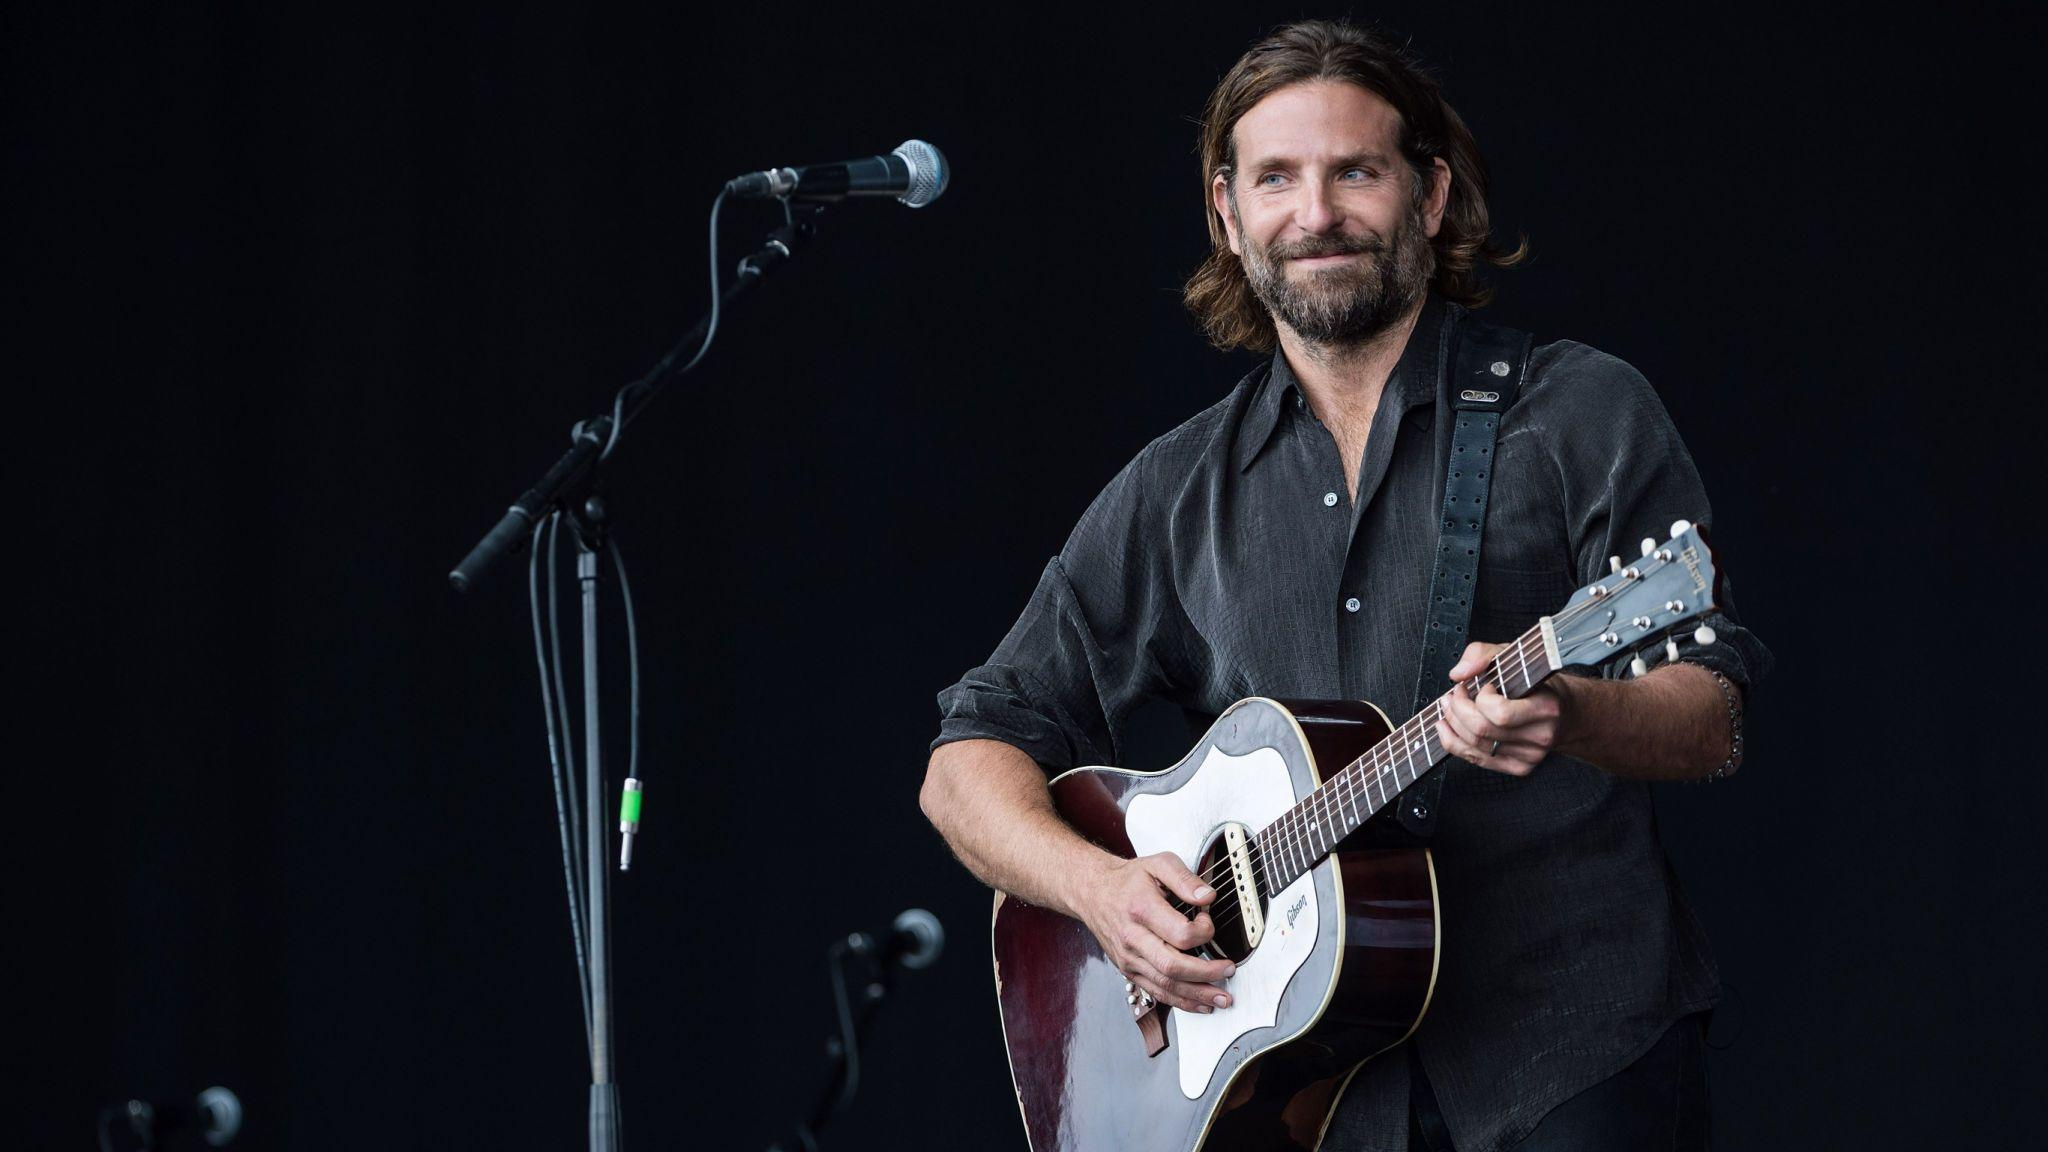 Bradley Cooper hints at playing Glastonbury for real after A Star Is